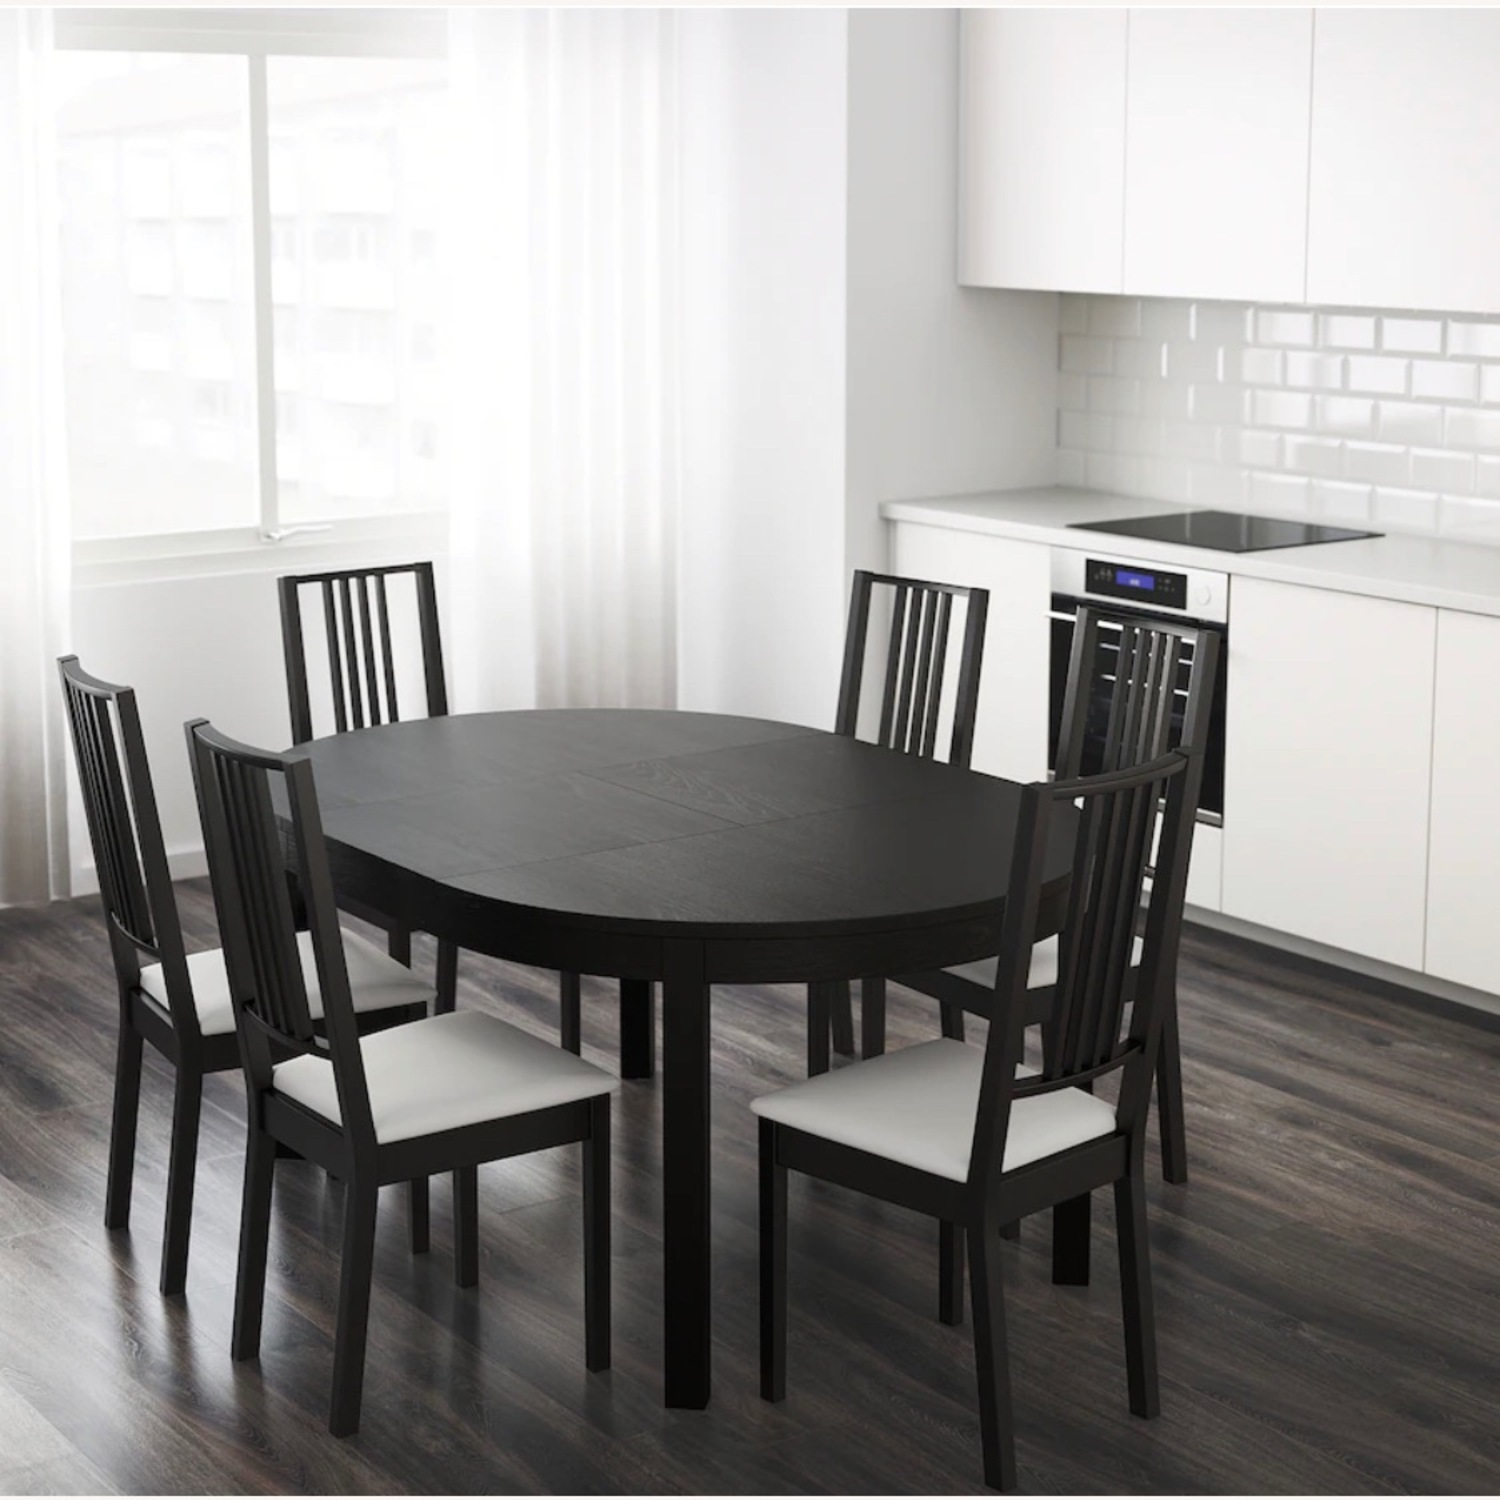 IKEA Dining Set - BJURSTA Table with INGOLF Chairs - image-6